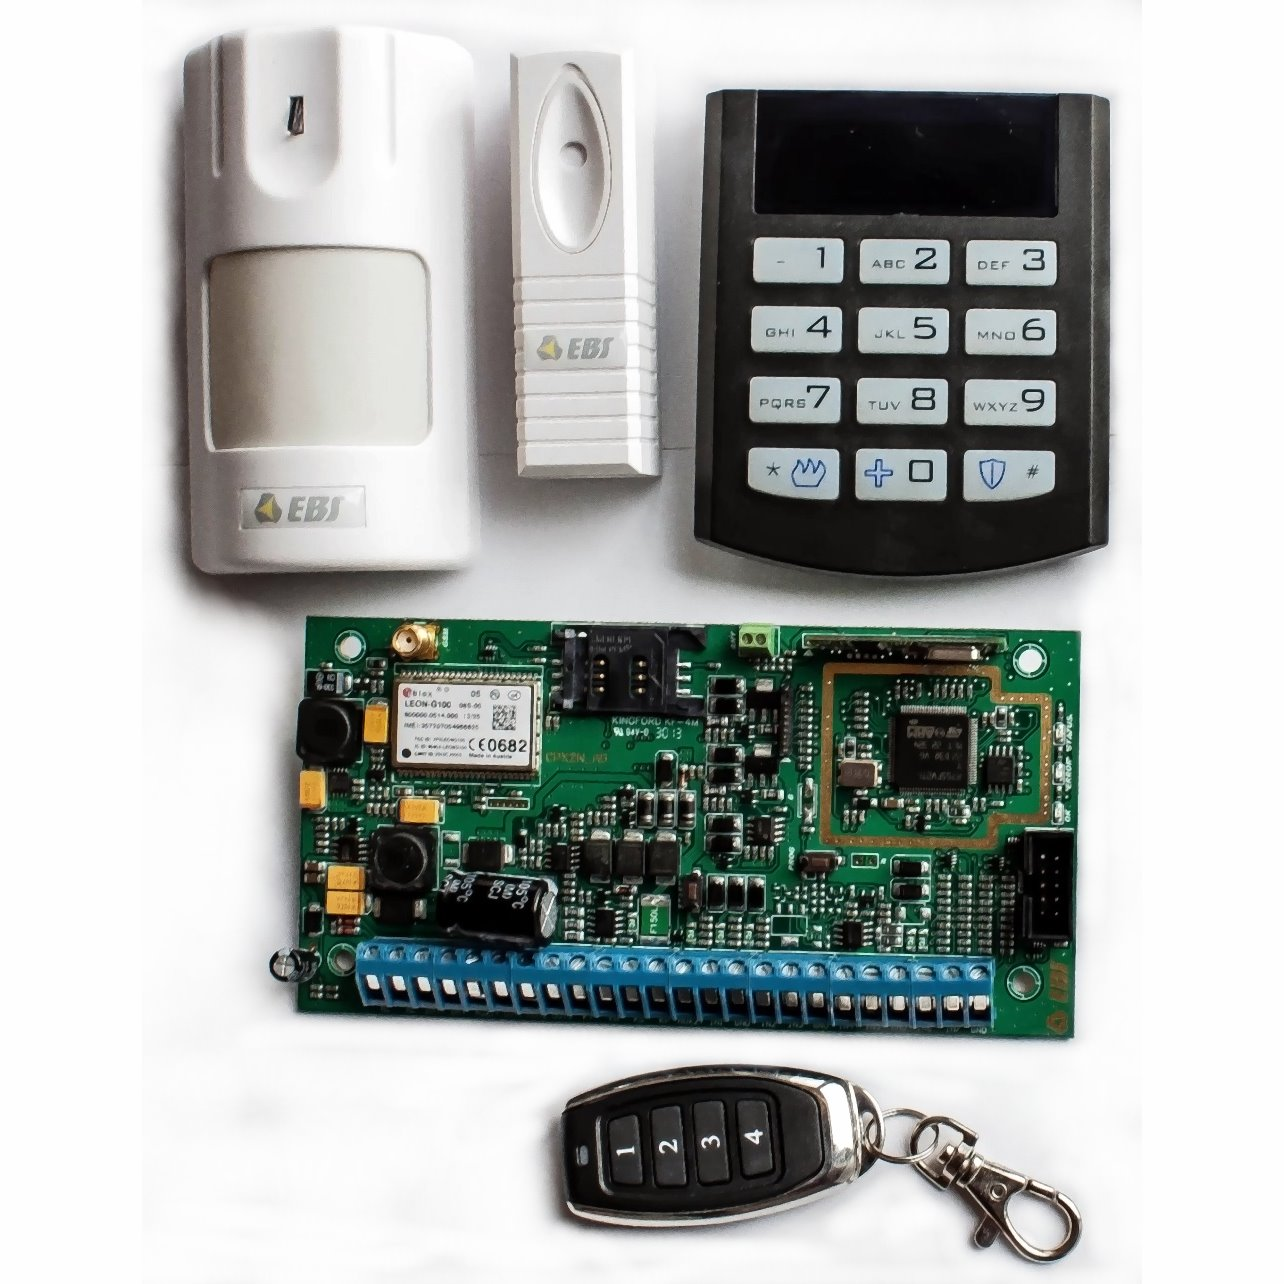 CPX200NW - Kit Centrale d'alarme Sans Fil avec Transmetteur GSM/GPRS intégré - Kit Wireless Control Panel integrated with GSM/GPRS Transmitter